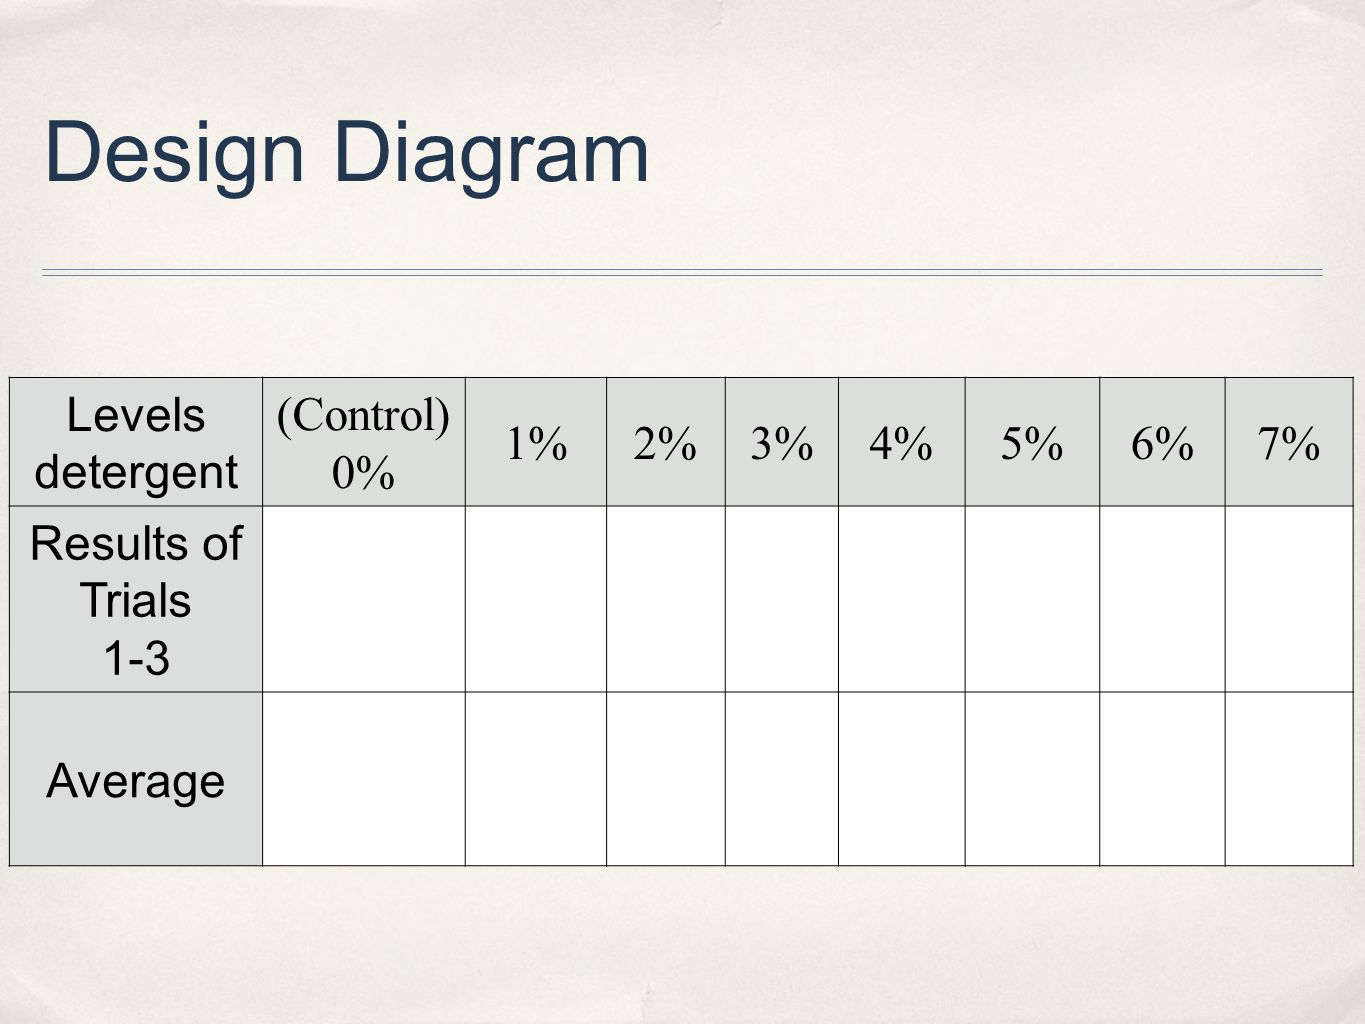 Design Diagram Levels detergent (Control) 0% 1%2%3%4%5%6%7% Results of Trials 1-3 Average